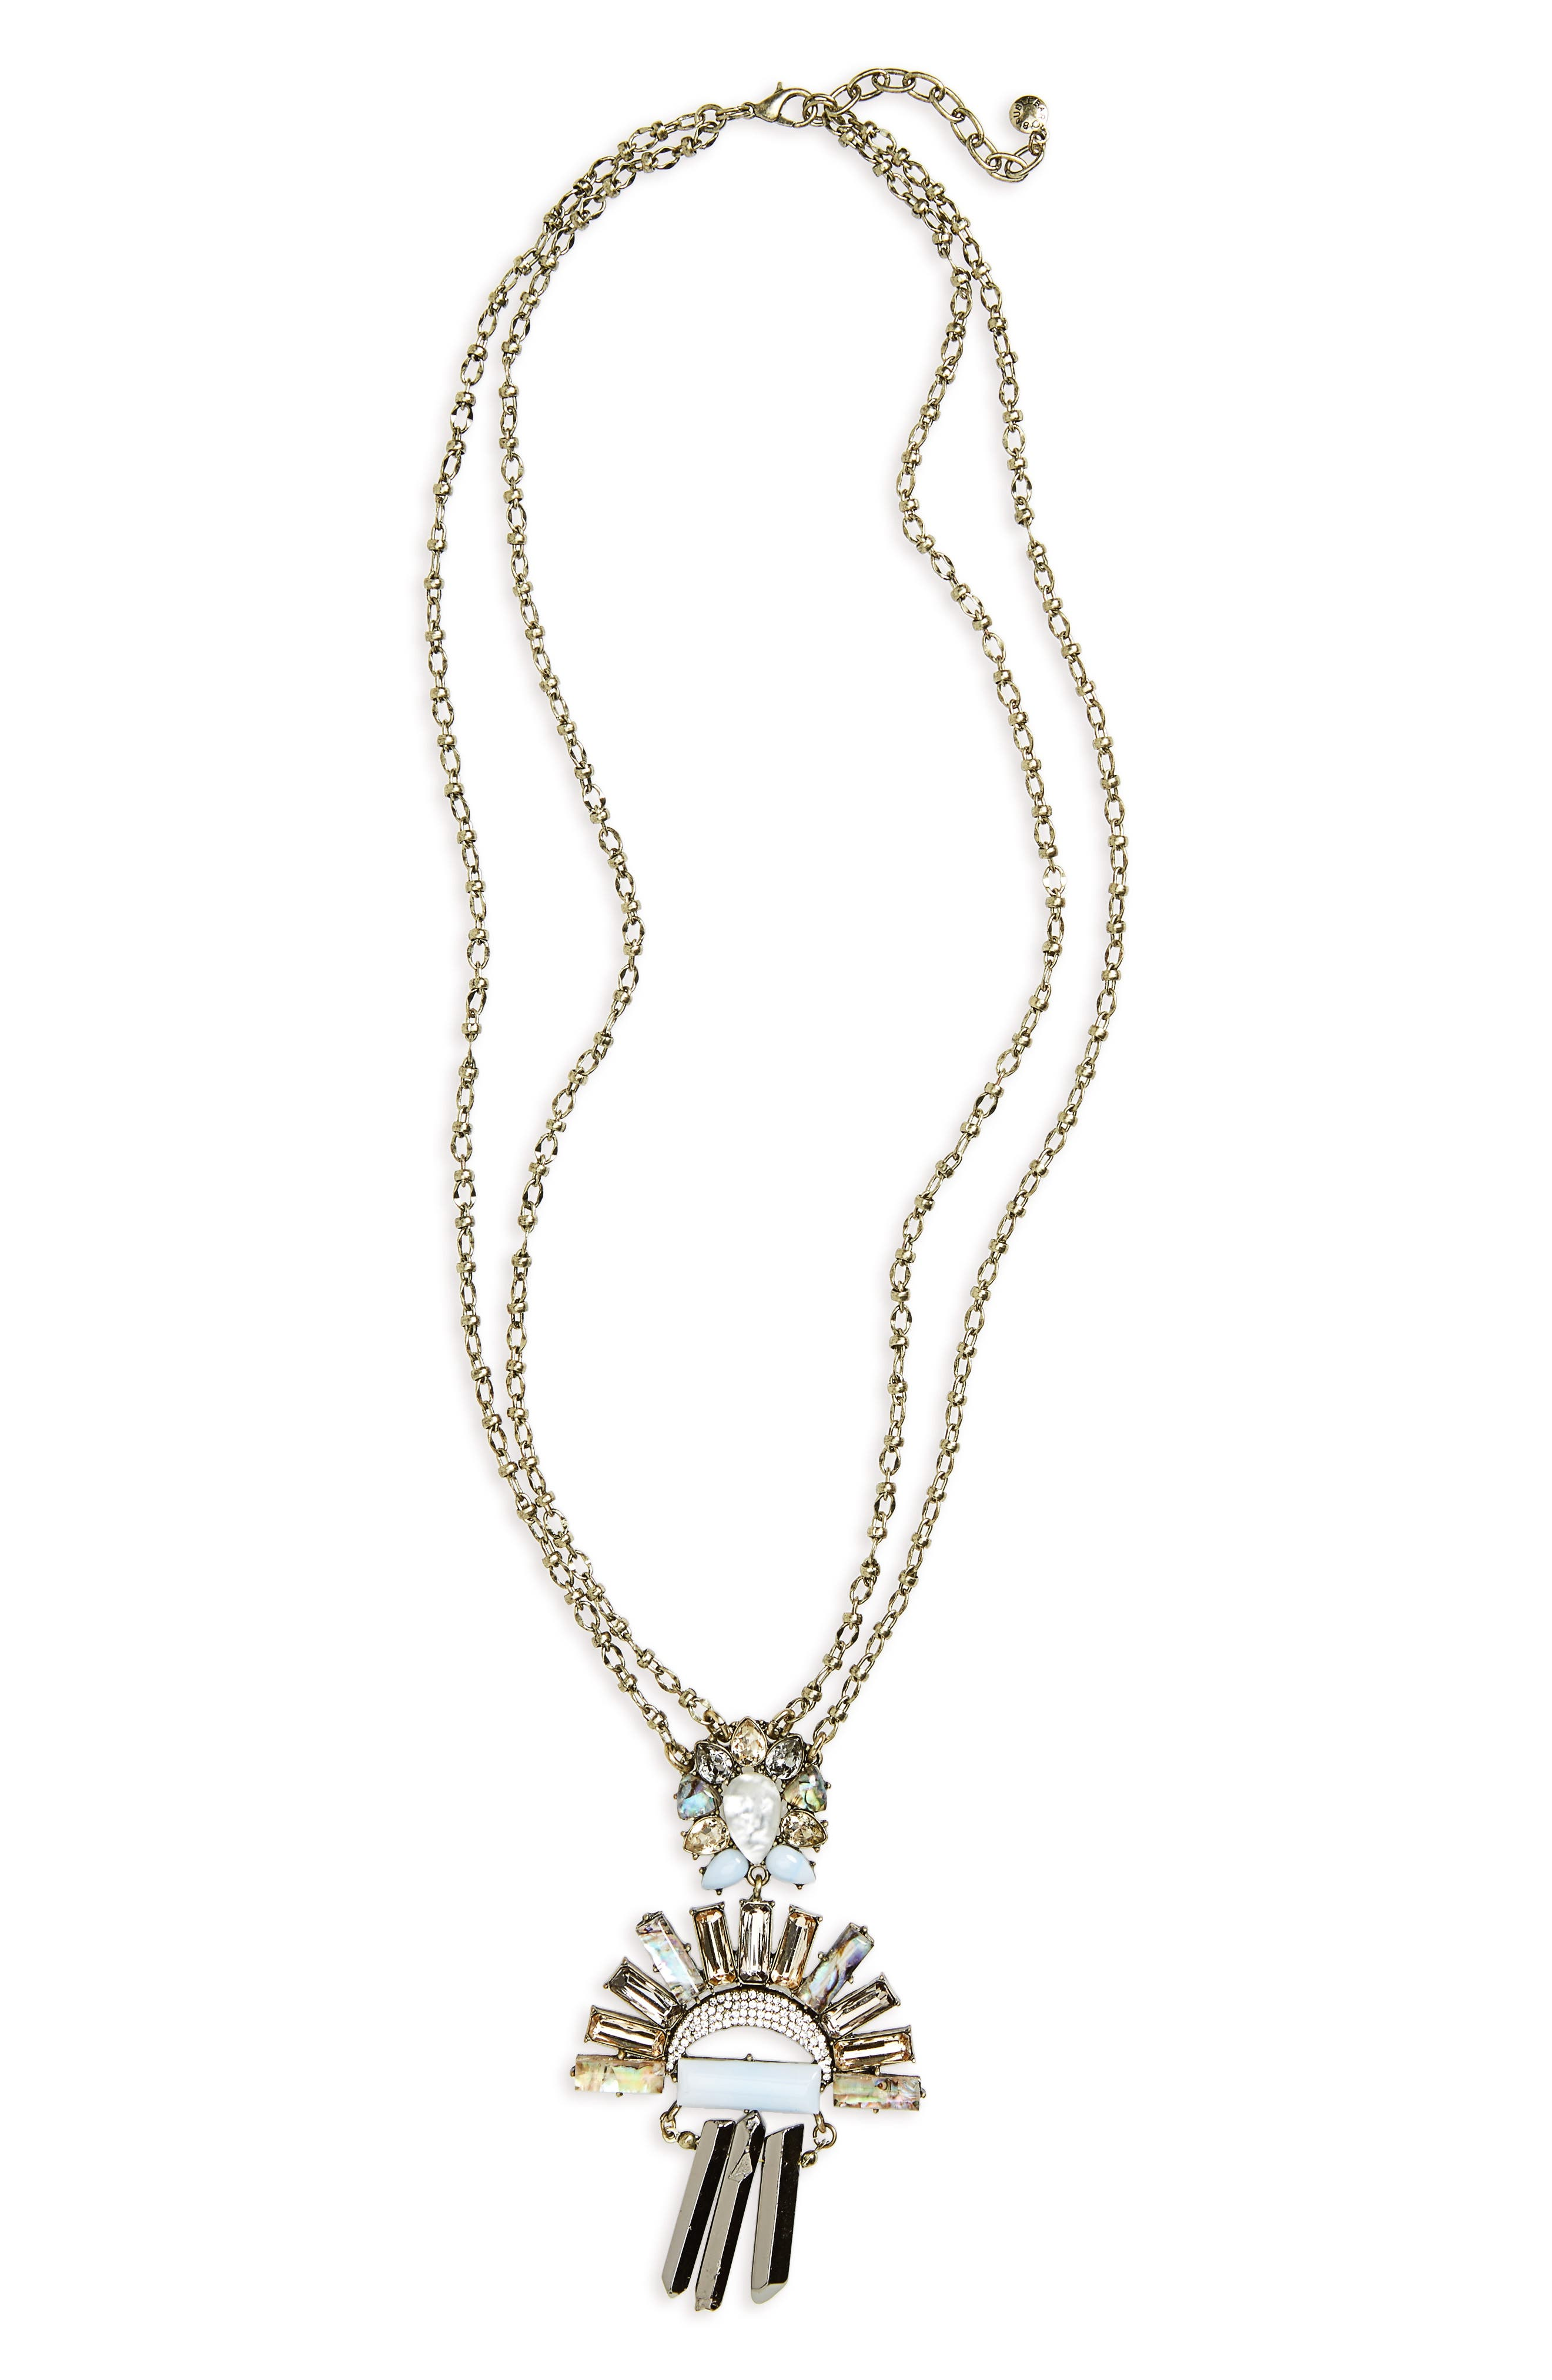 Main Image - Baublebar Torrence Crystal Necklace